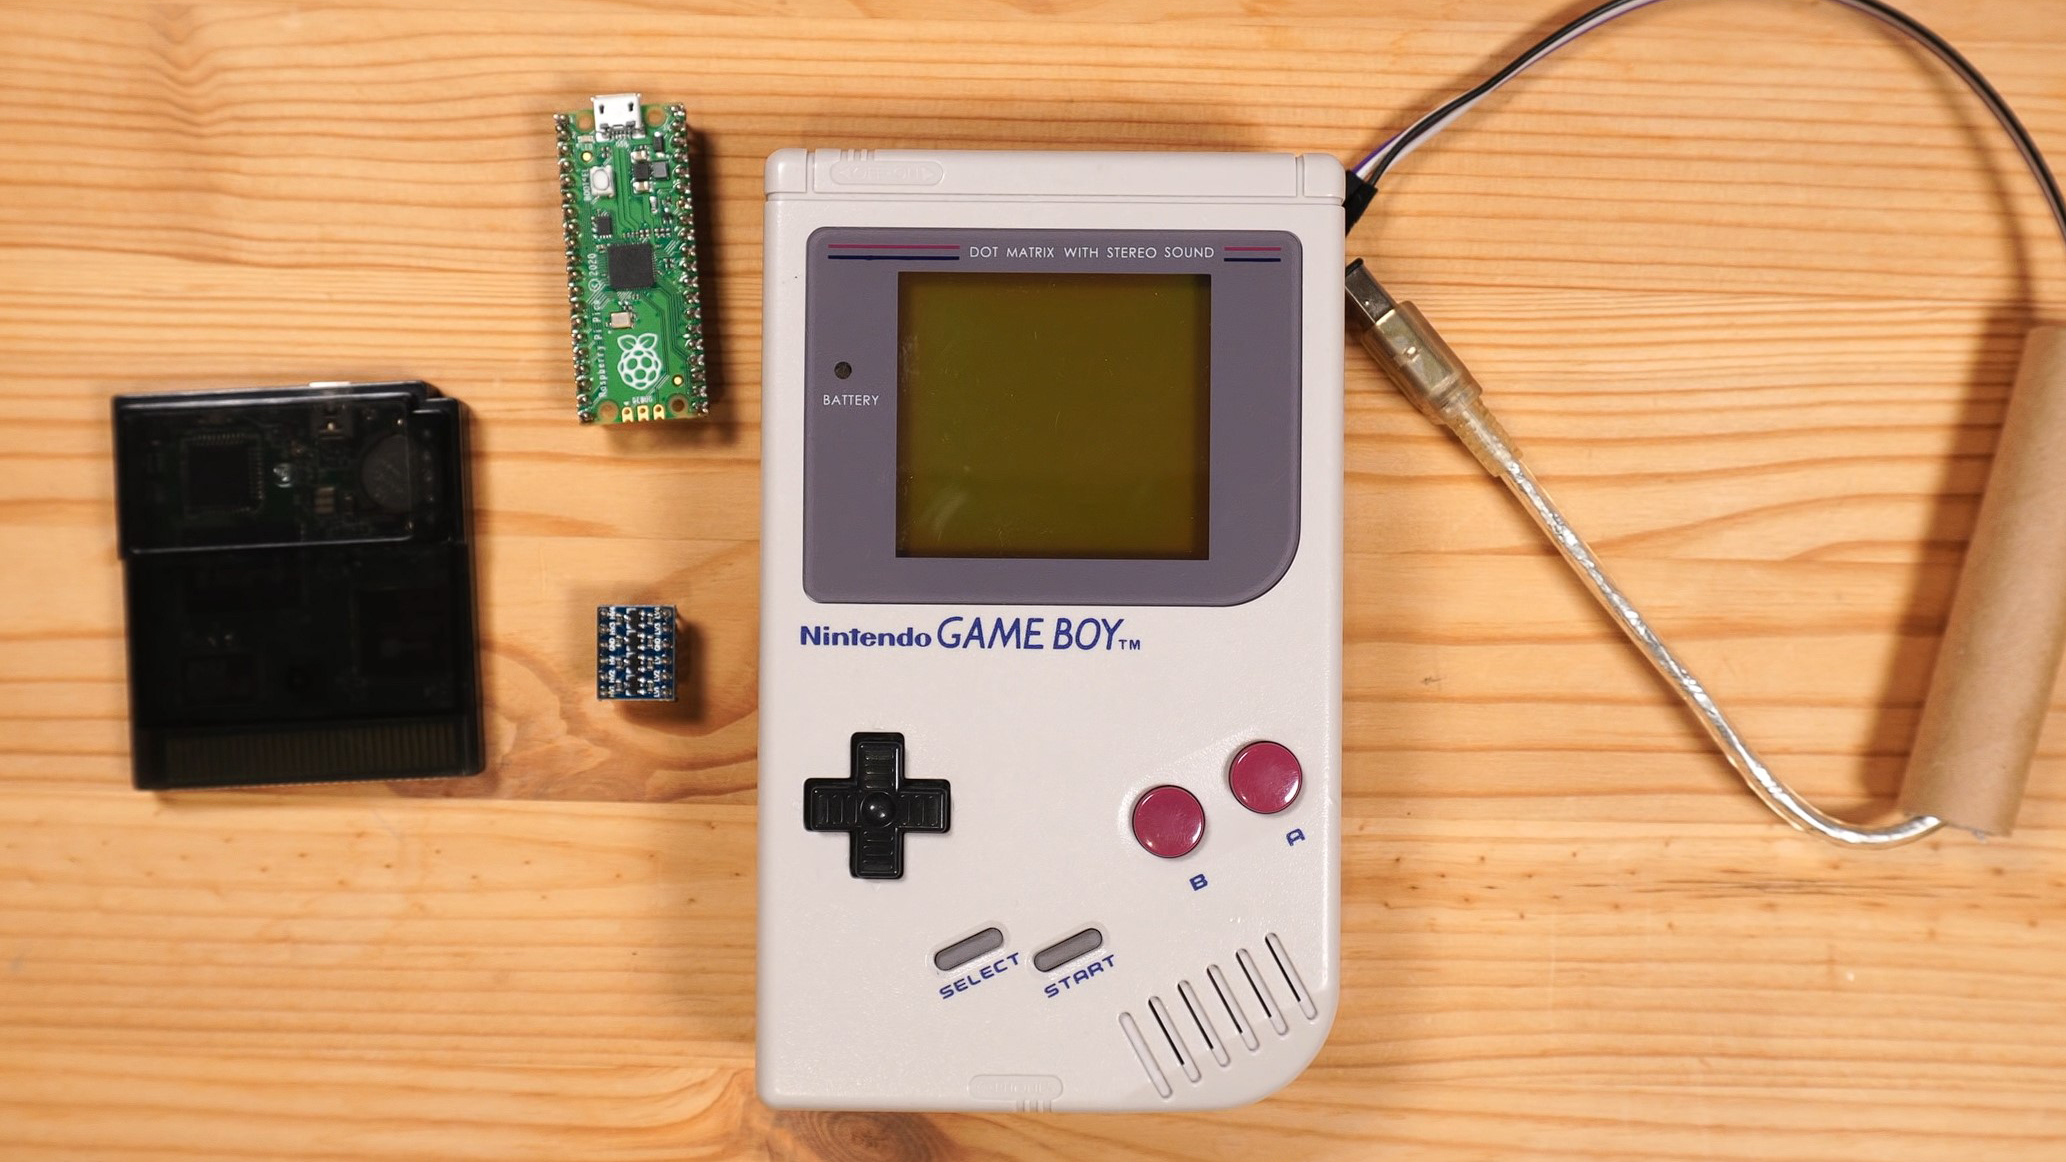 This Game Boy-cum-cryptocurrency miner will score a Bitcoin long after the Earth is destroyed by the Sun